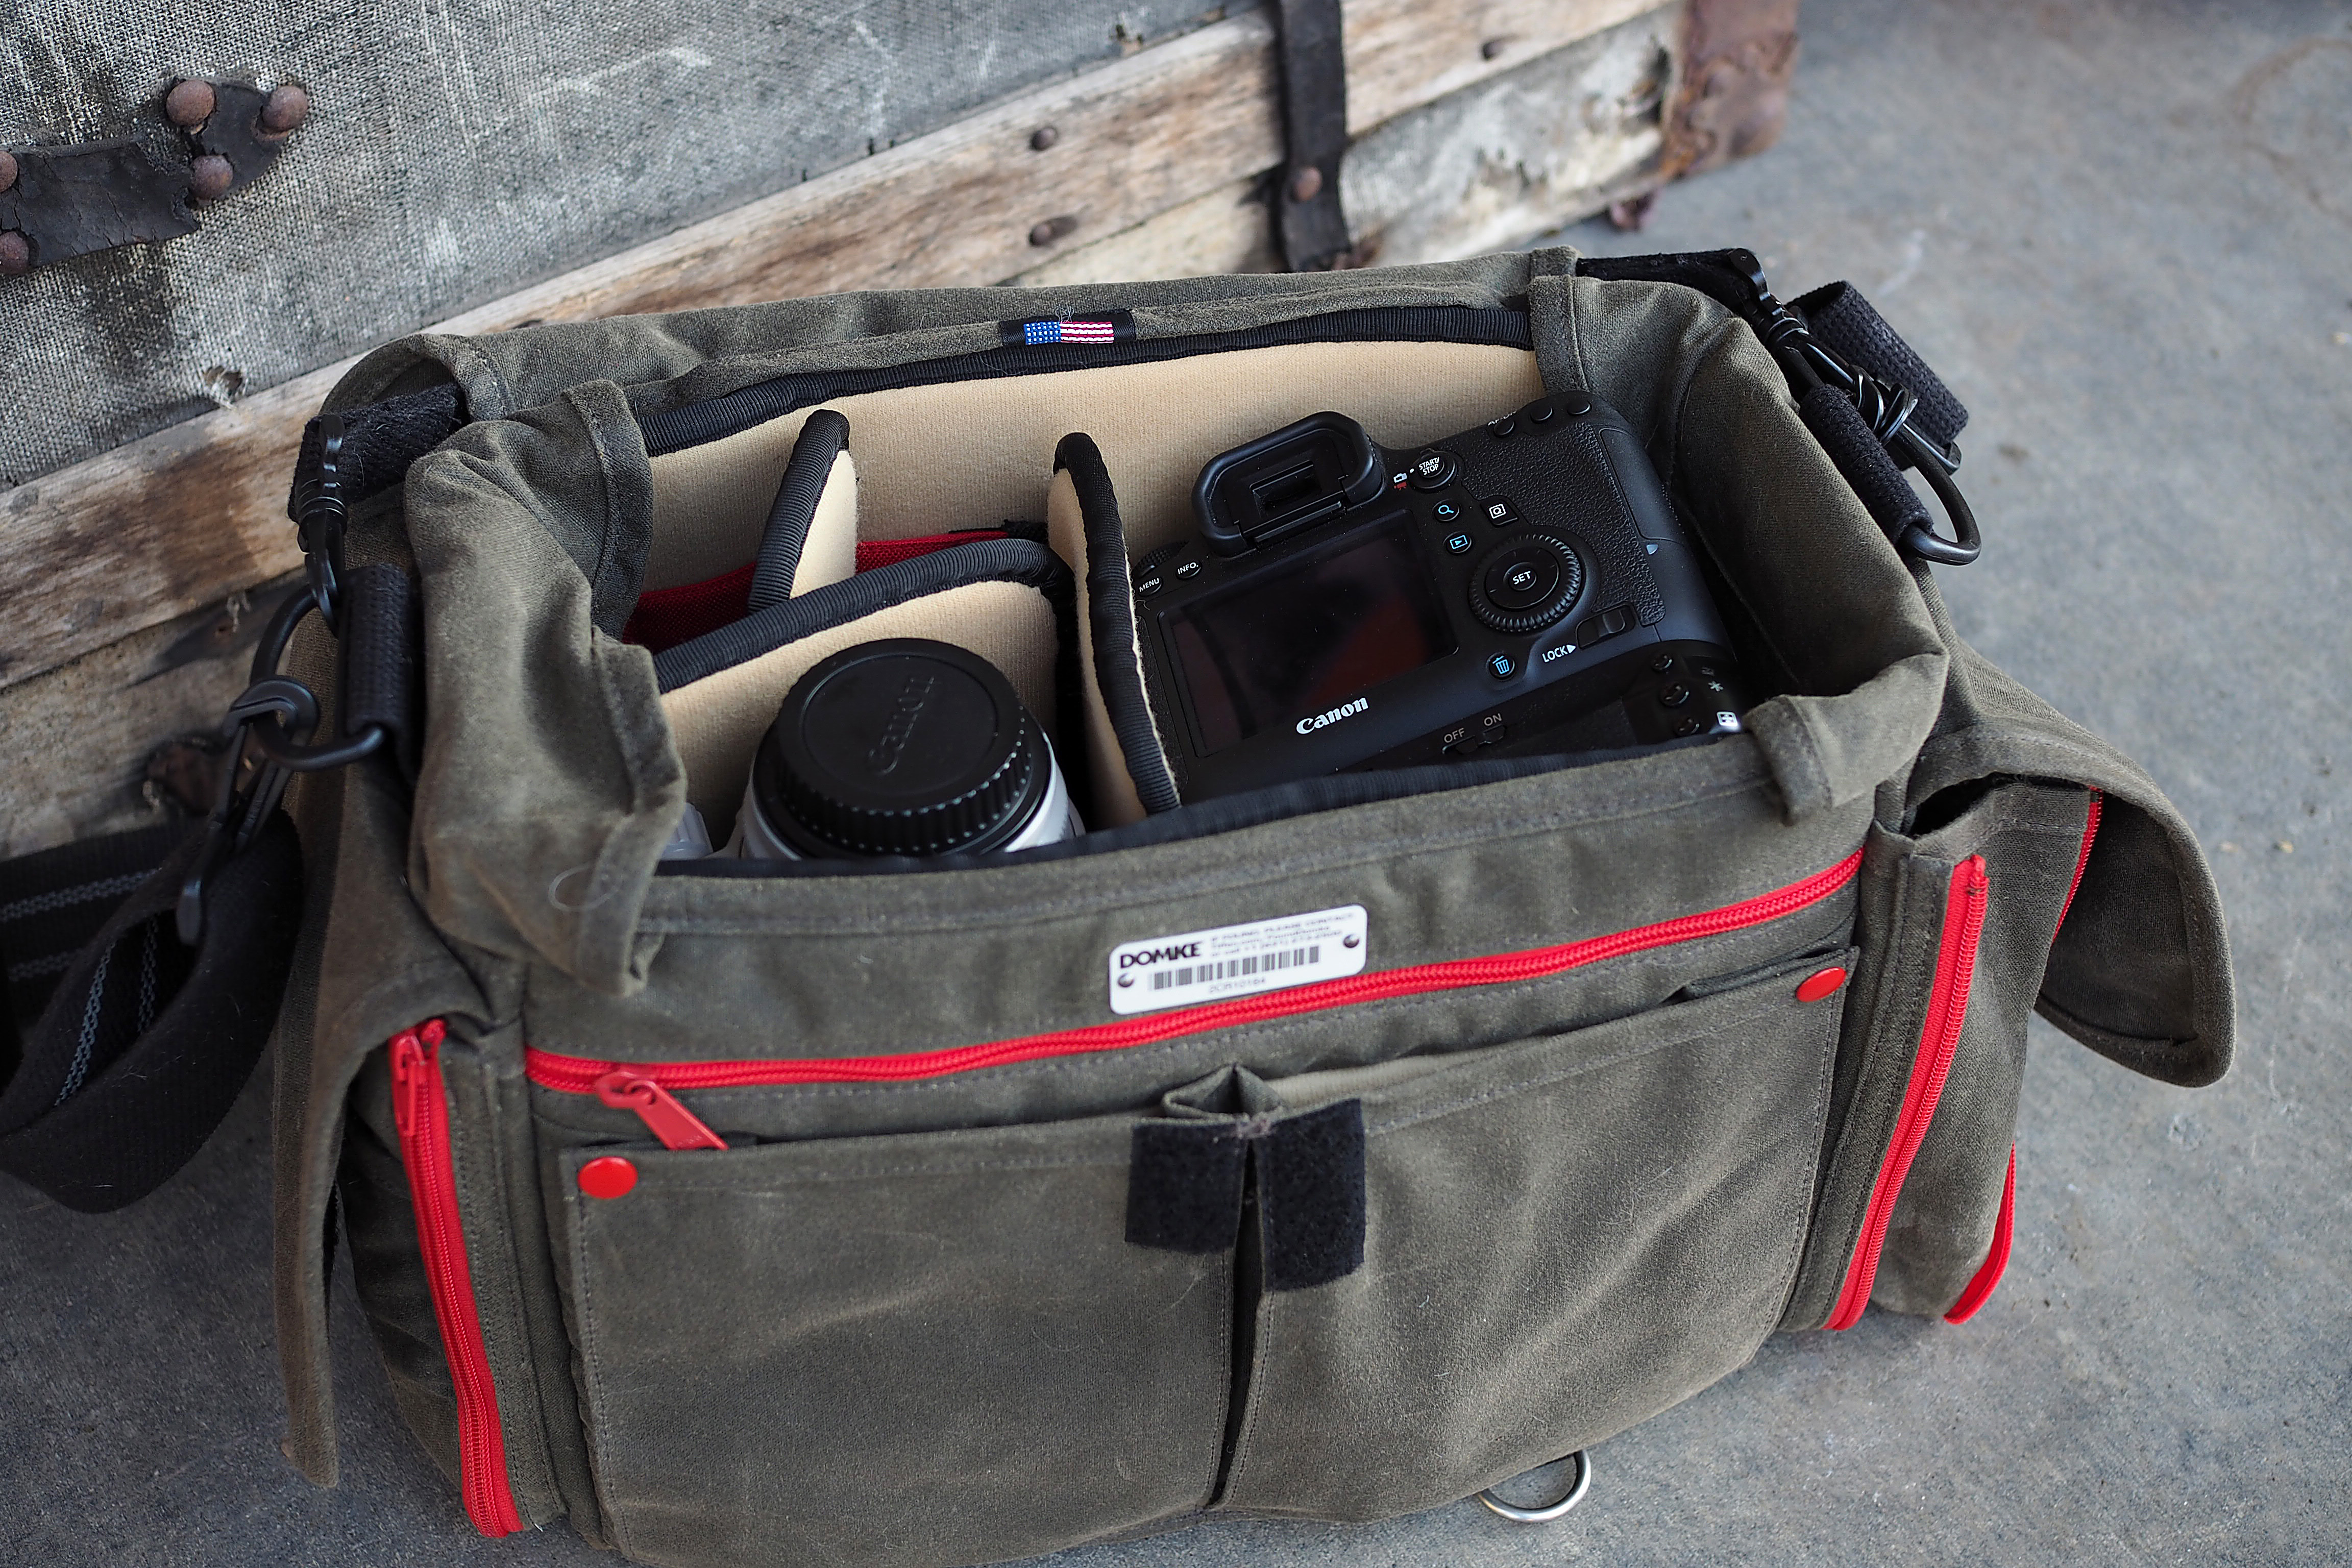 Like My Domke J 2 The Chronicle Has A Well Padded And Removable Baseplate Unlike Most Older Bags Four Walls Around